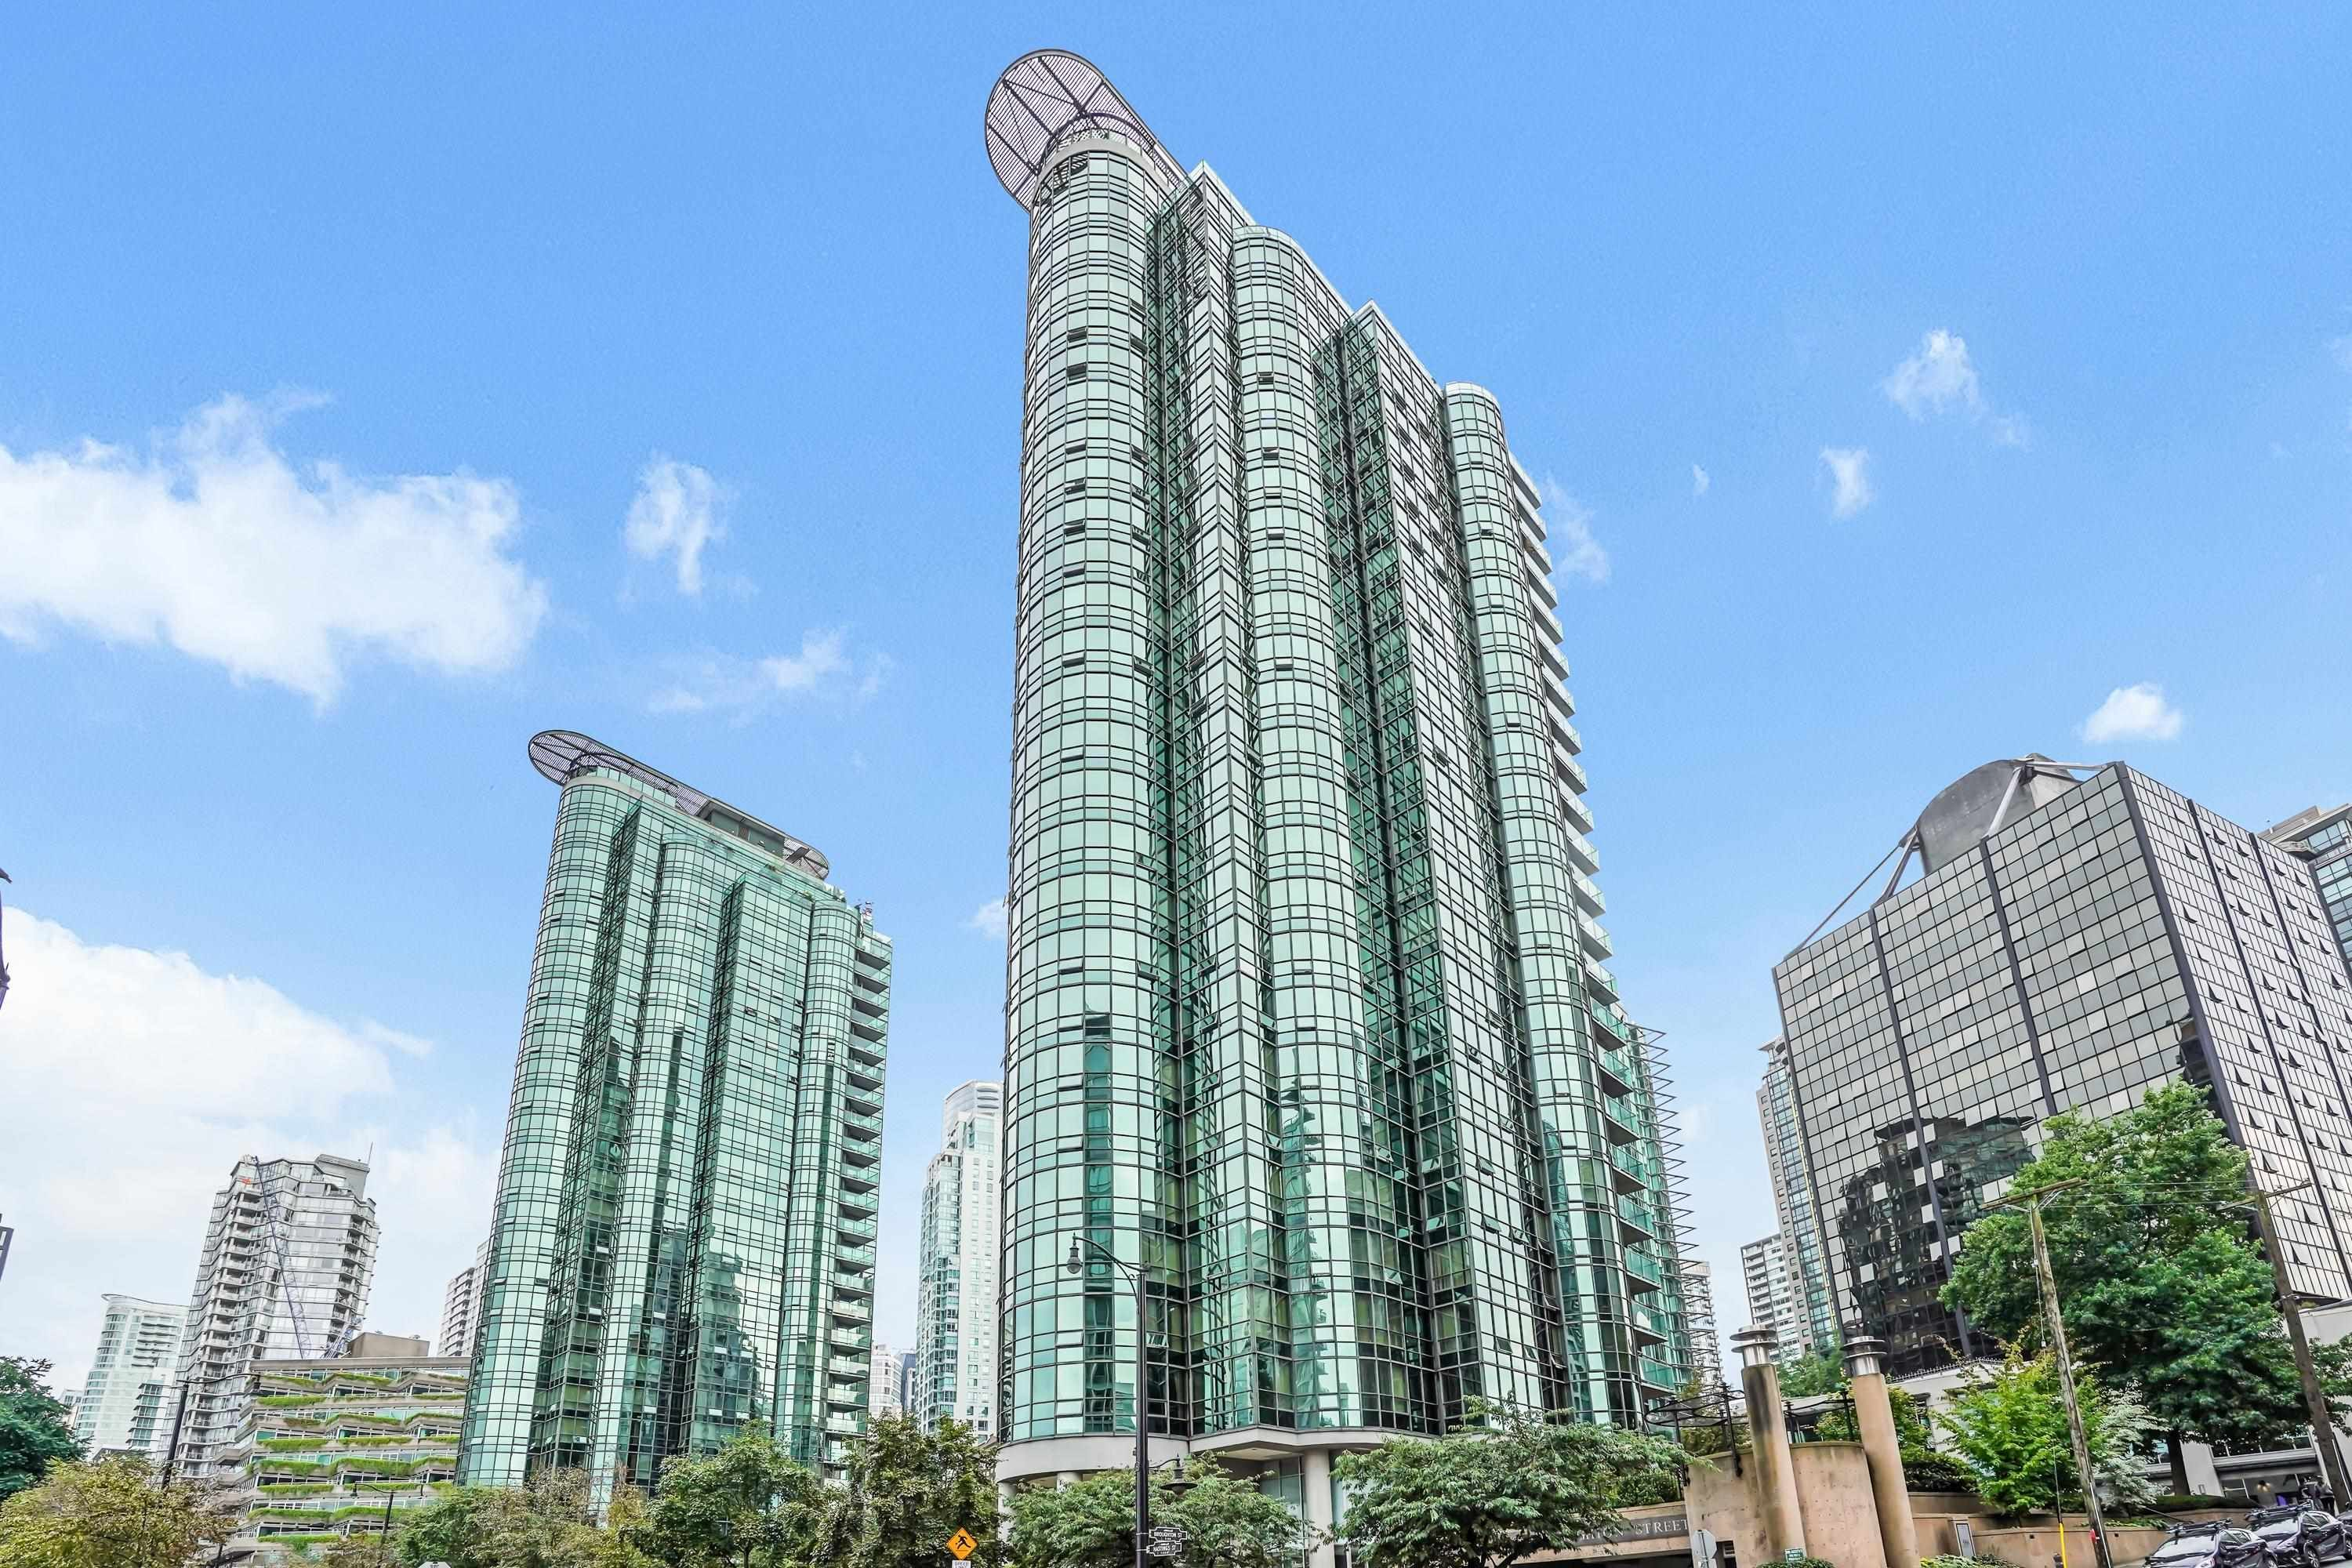 """Main Photo: 908 588 BROUGHTON Street in Vancouver: Coal Harbour Condo for sale in """"HARBOURSIDE TOWER 1"""" (Vancouver West)  : MLS®# R2610218"""